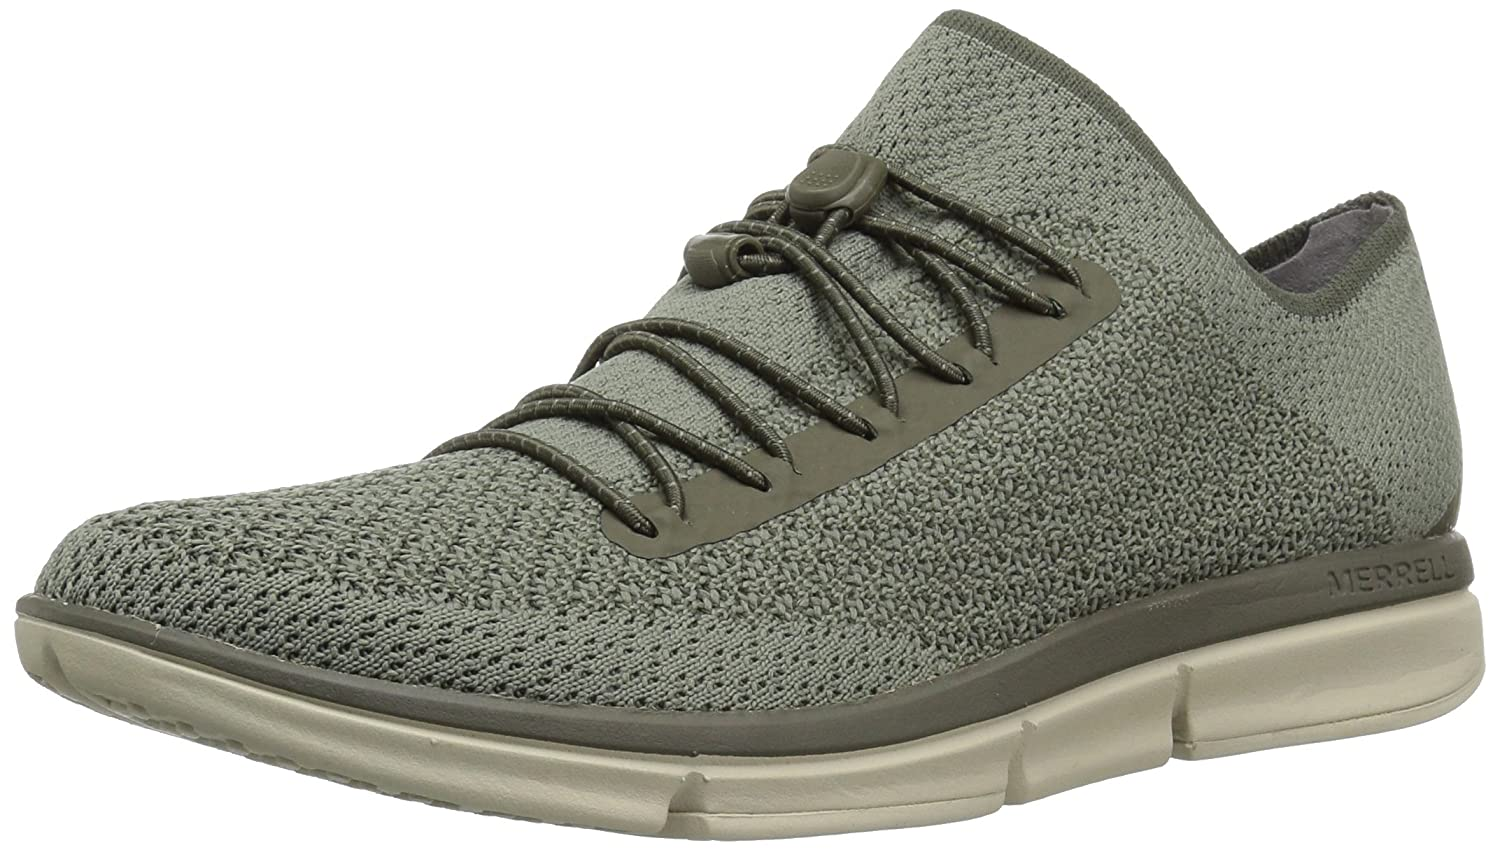 Merrell Women's Zoe Sojourn Lace Knit Q2 Sneaker B079DH1Y2S 10 B(M) US|Dusty Olive